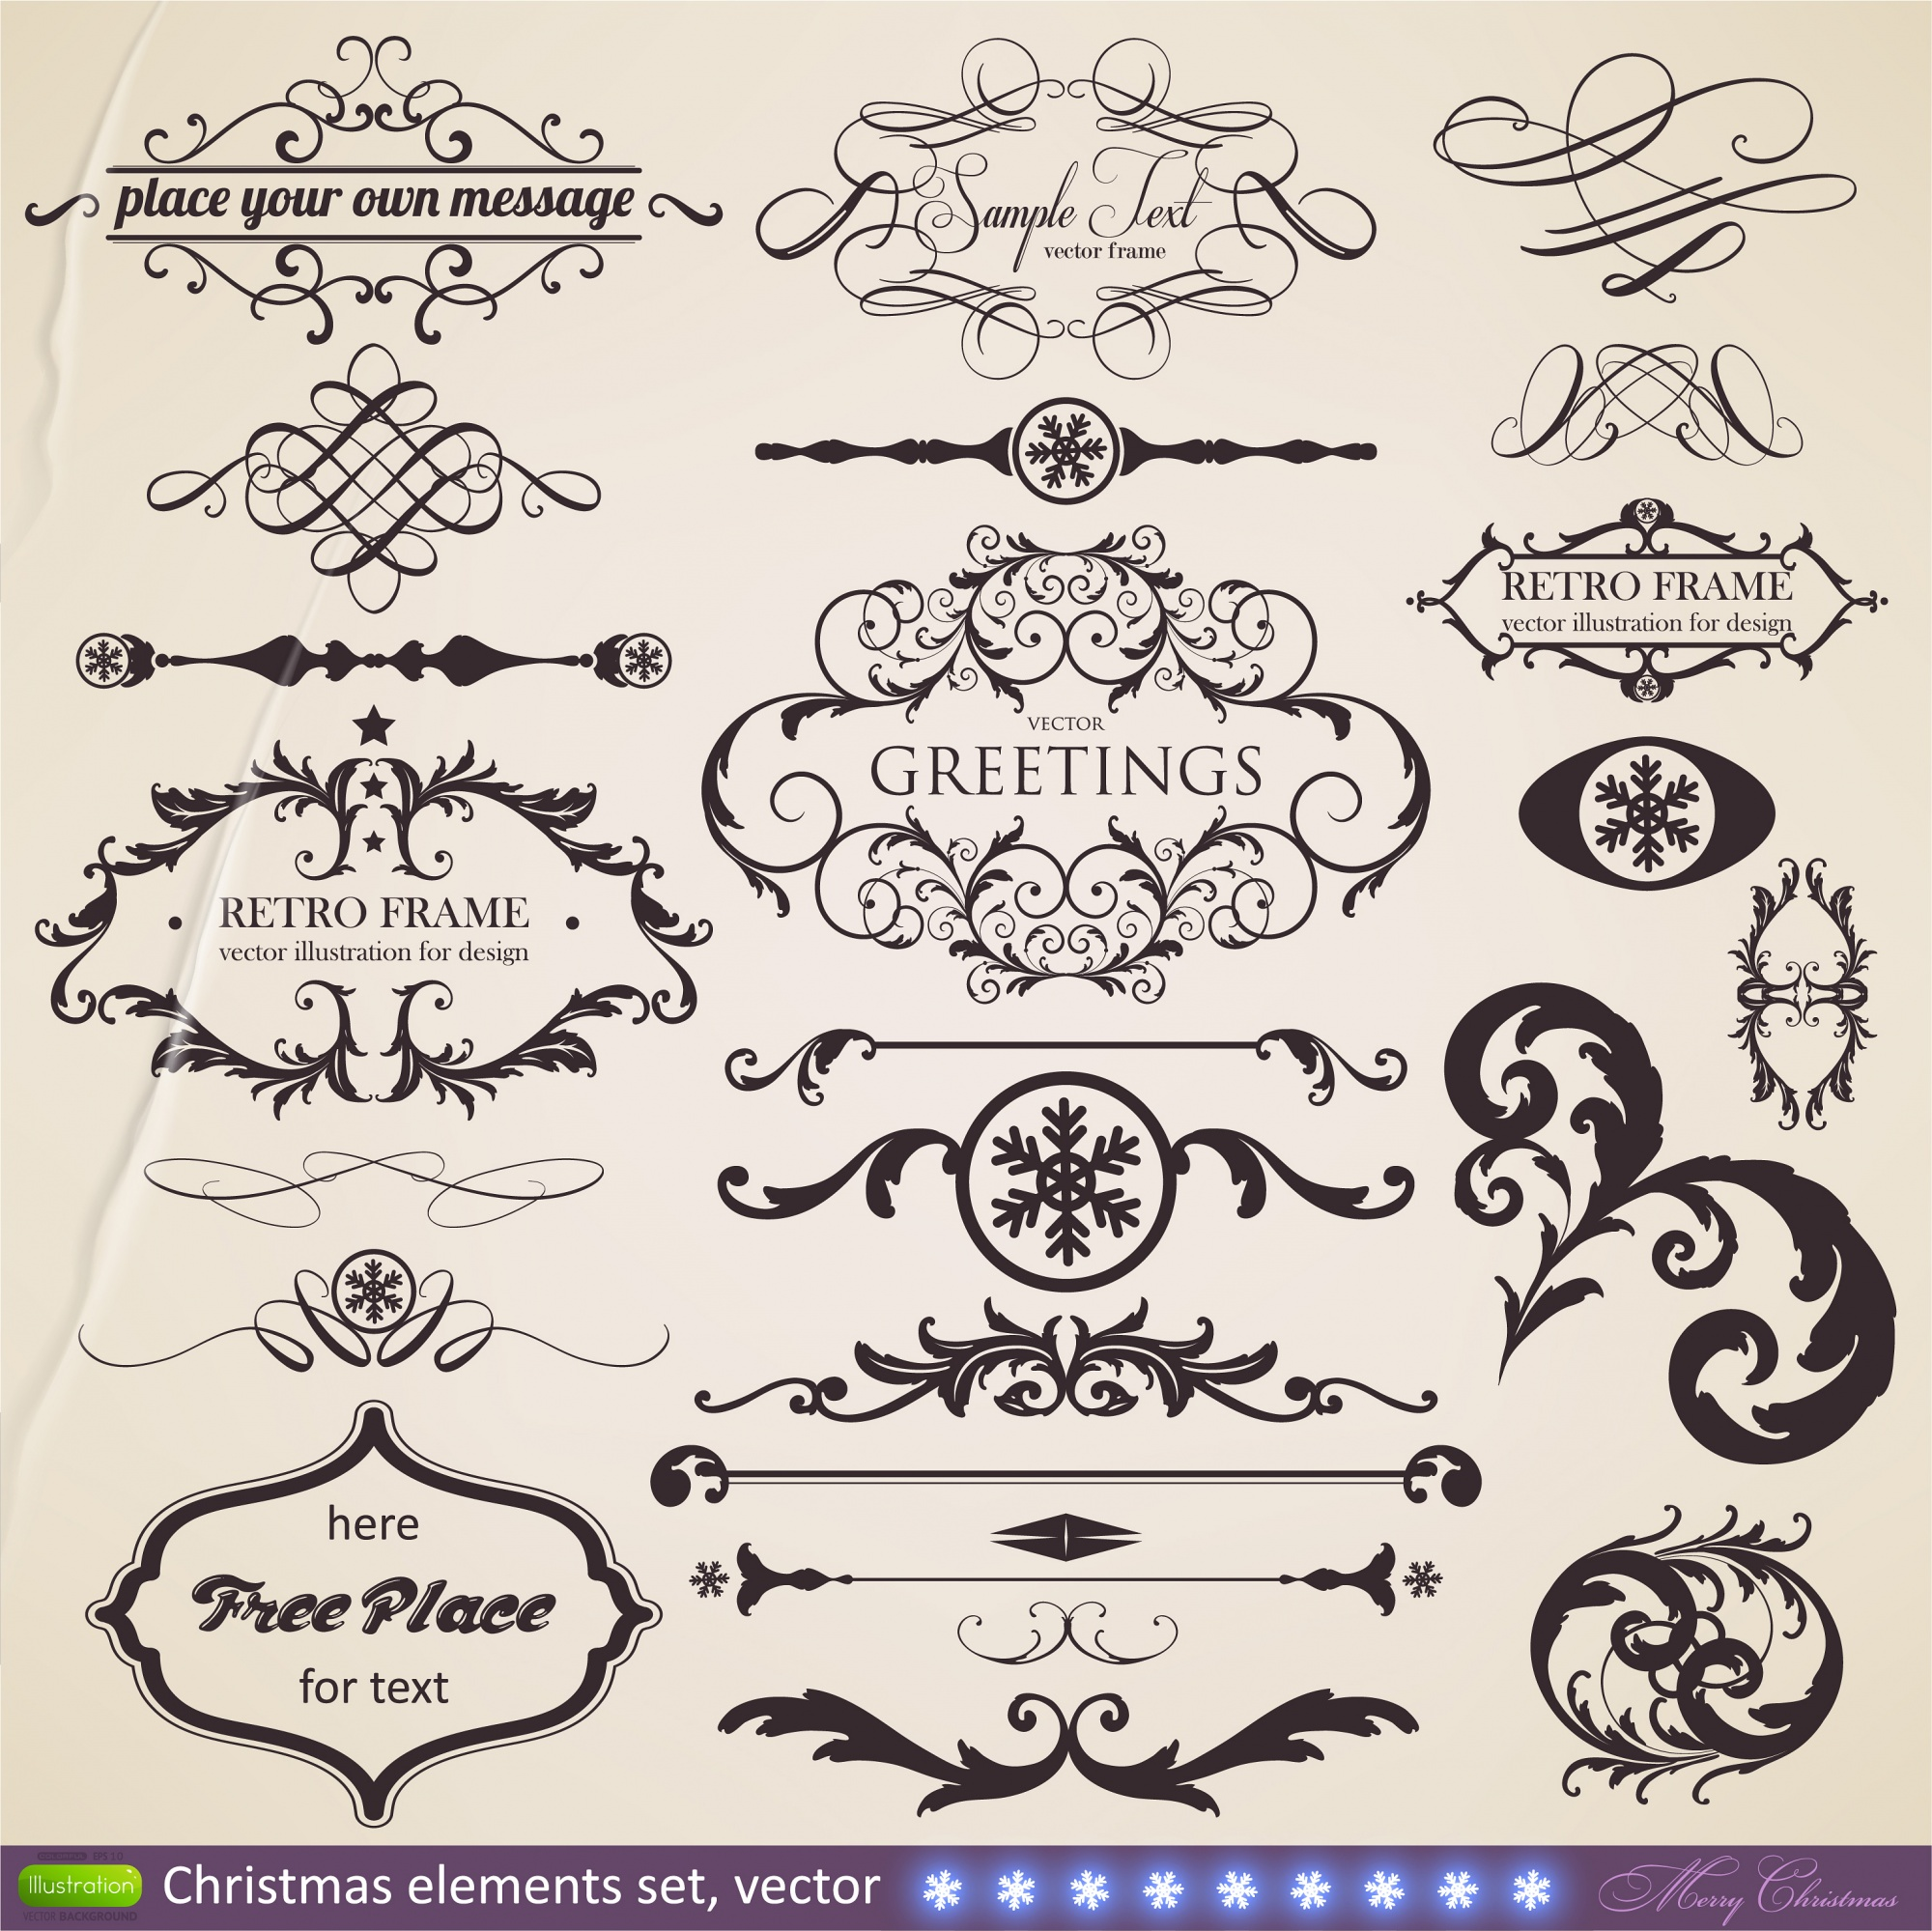 Calligraphy border certificate greeting document